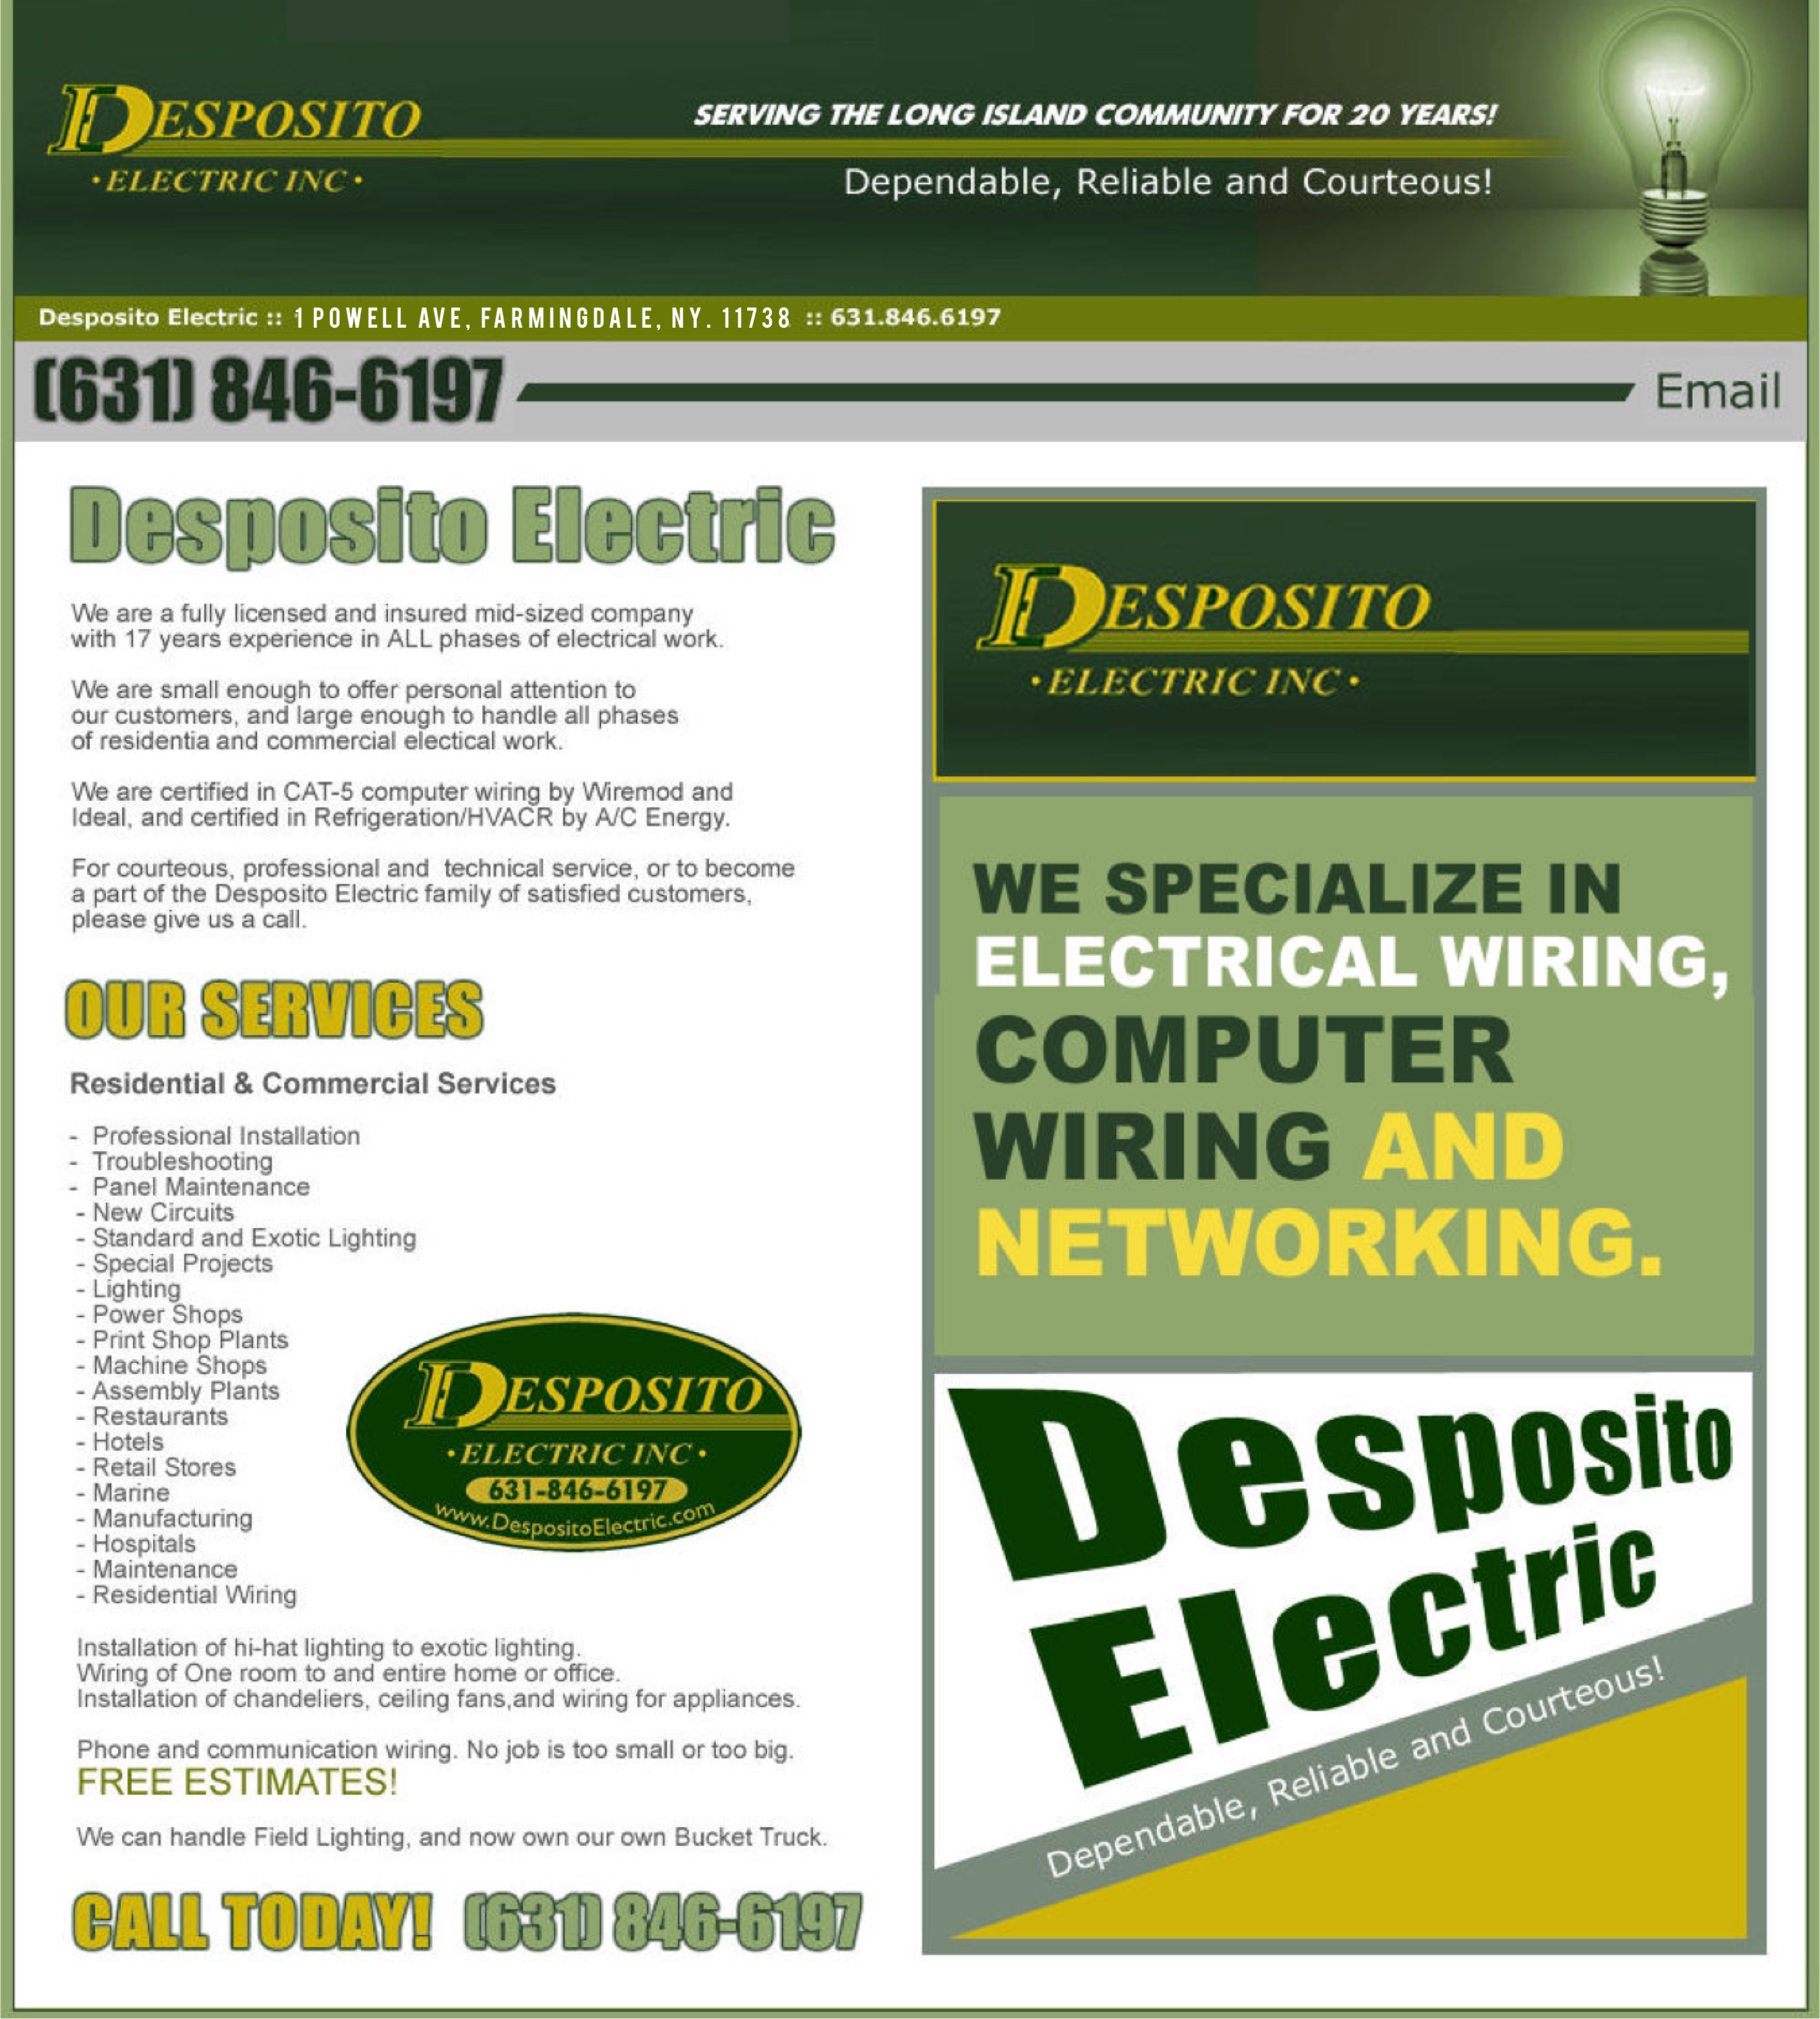 Despositio Electric - 631-846-6197 - Electrical Services - Bohemia, New York.